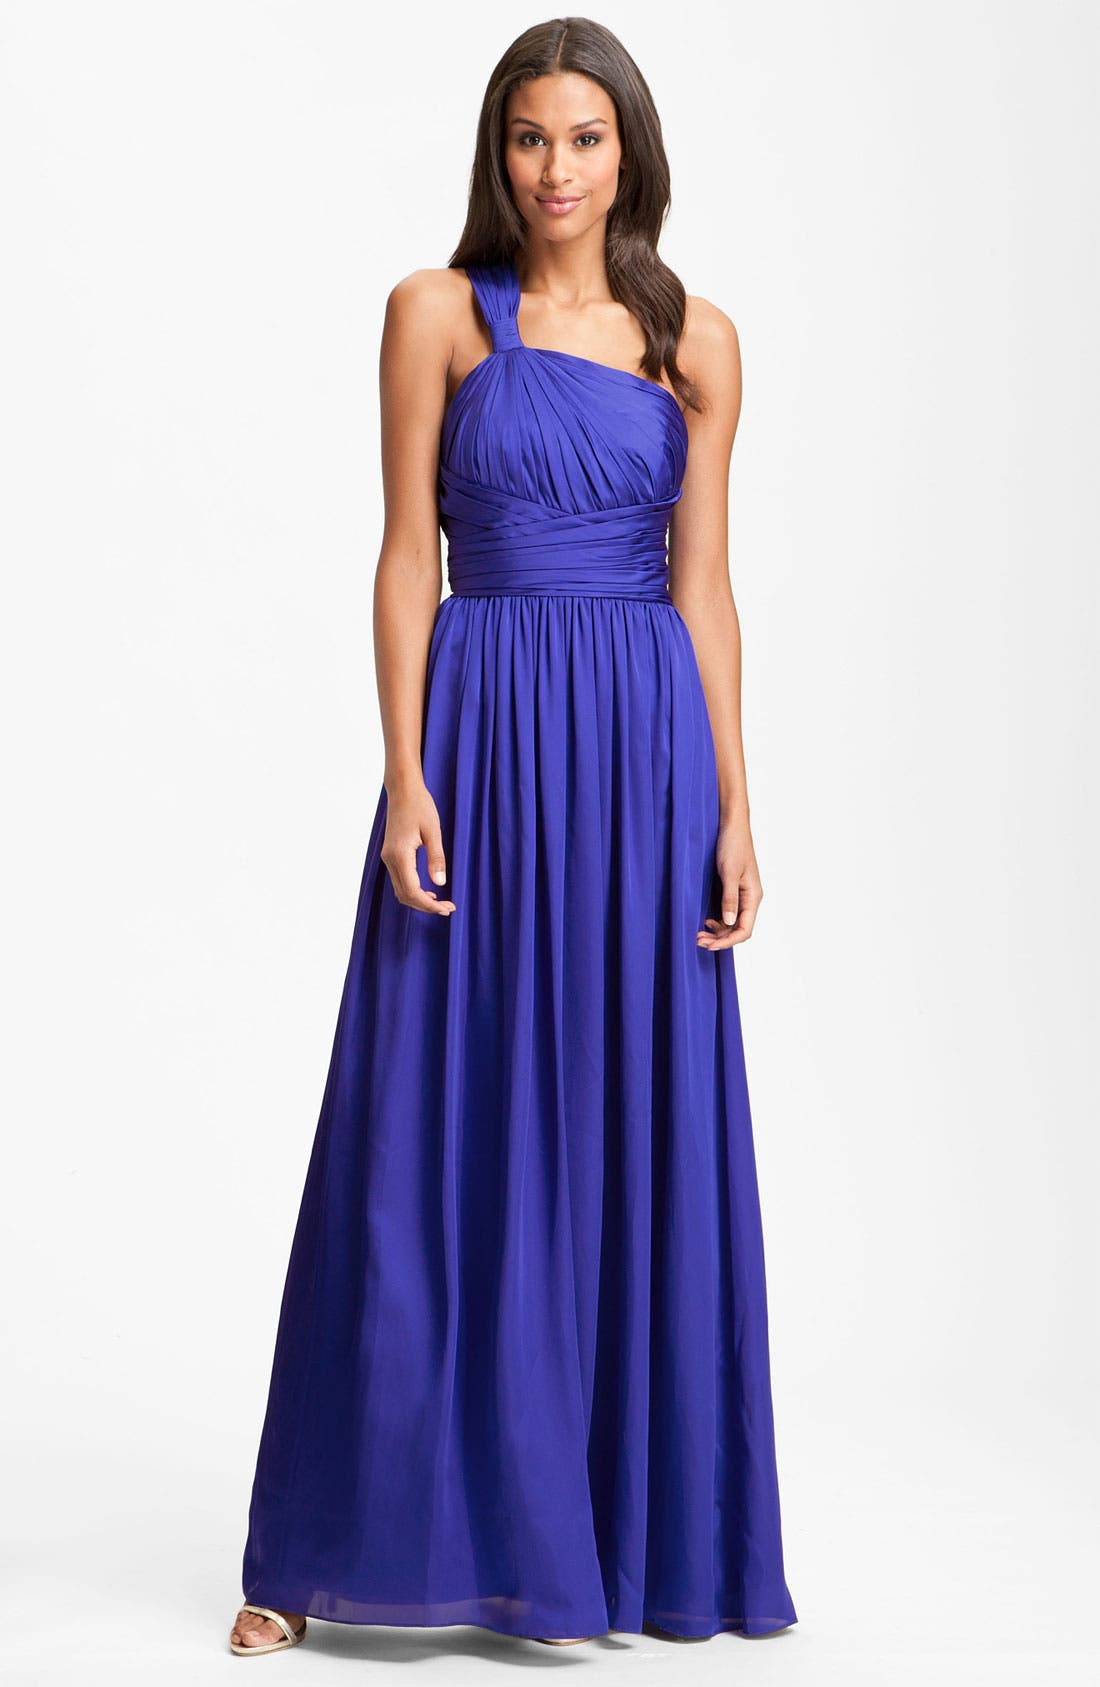 Alternate Image 1 Selected - ML Monique Lhuillier Bridesmaids One Shoulder Charmeuse Gown (Nordstrom Exclusive)